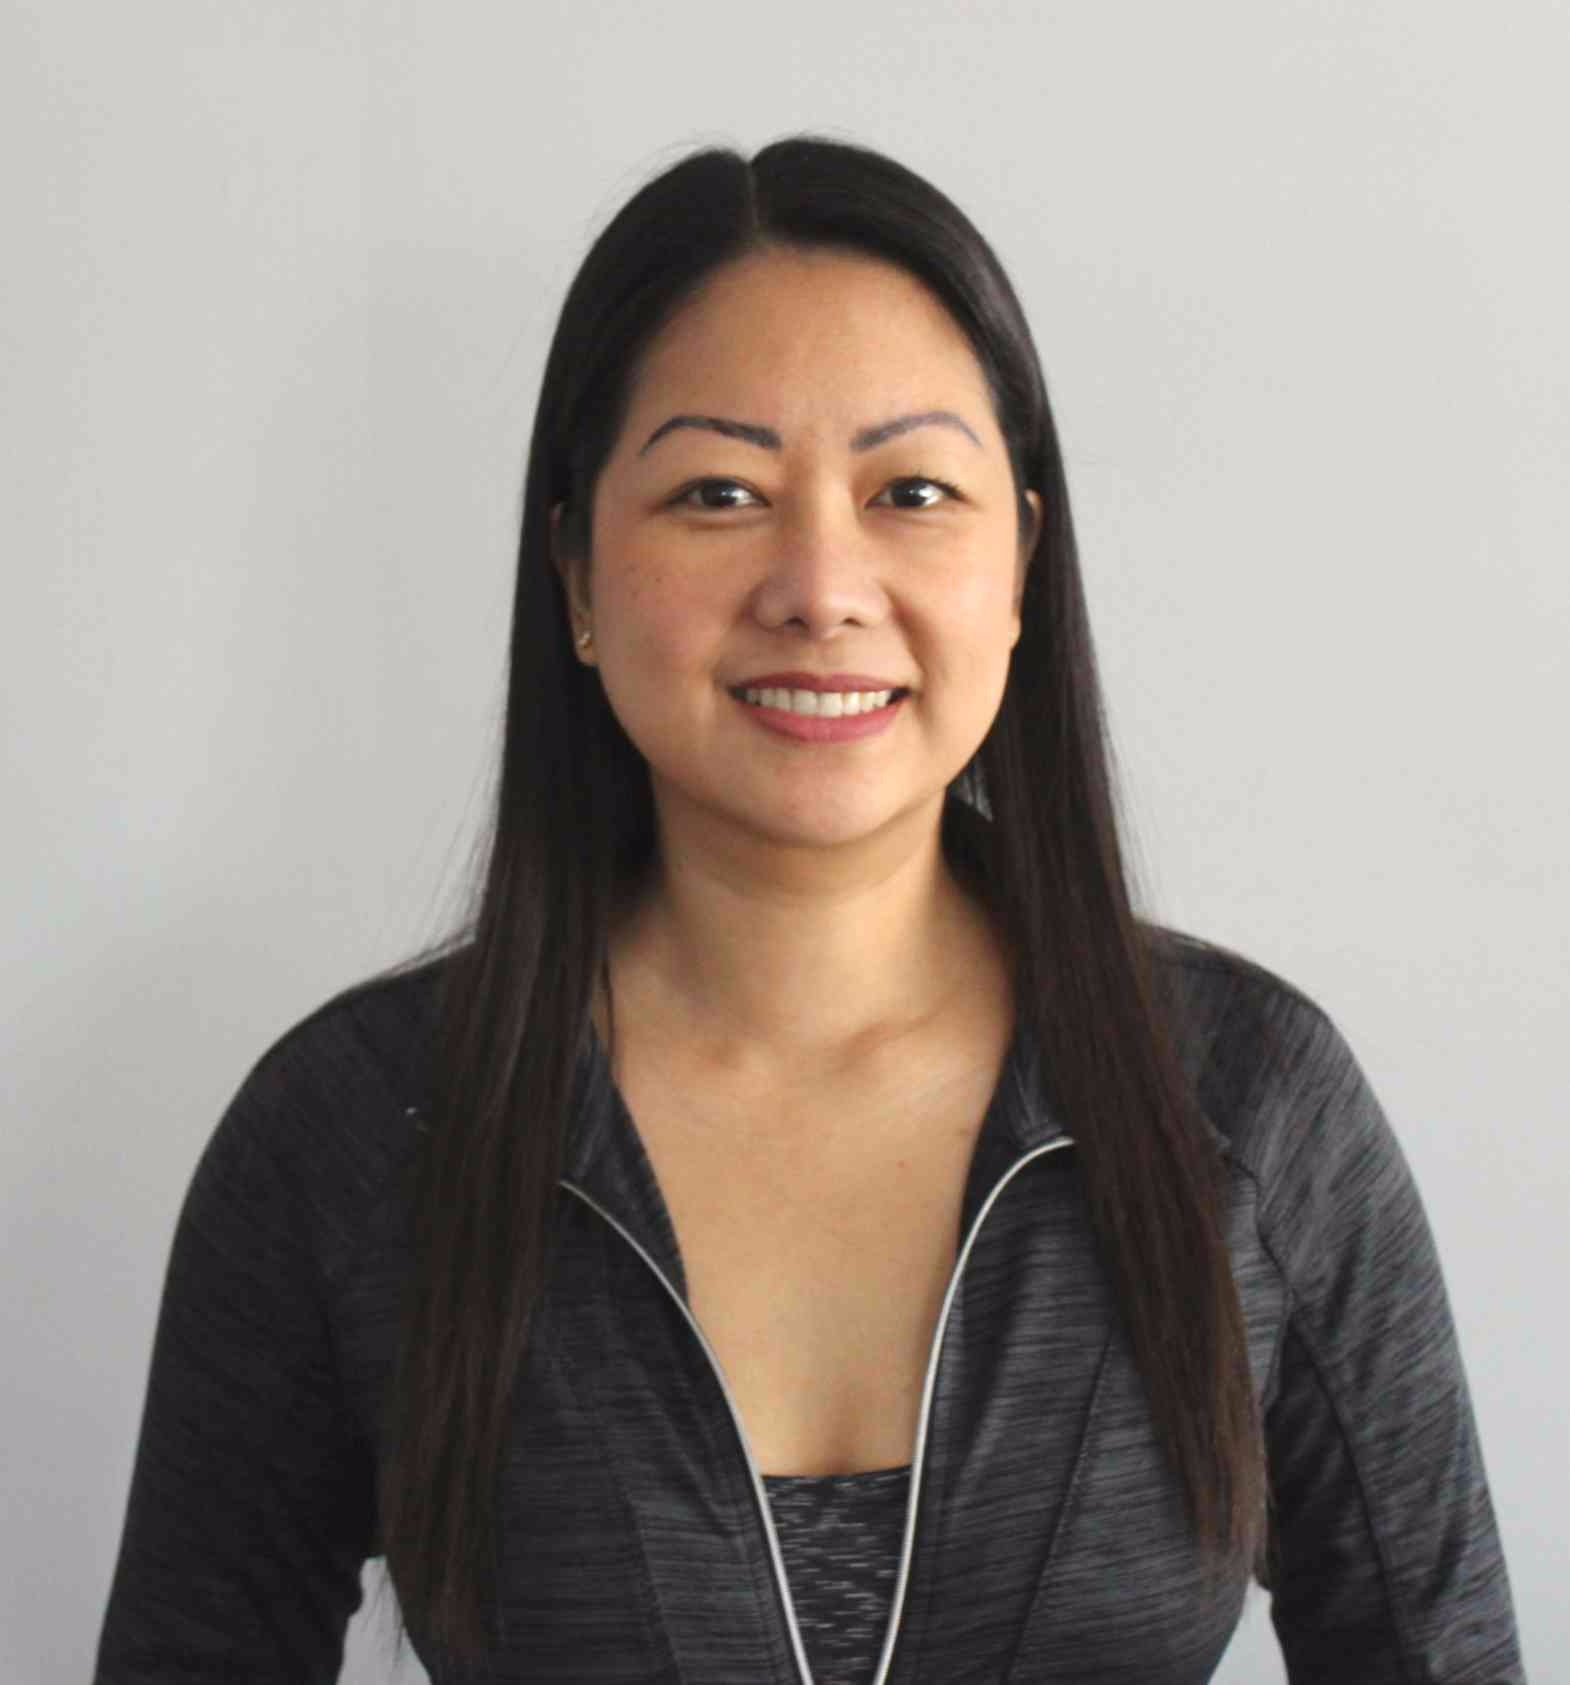 Kathryn, Chiropractic Assistant, Health & Healing Family Chiropractic Mississauga